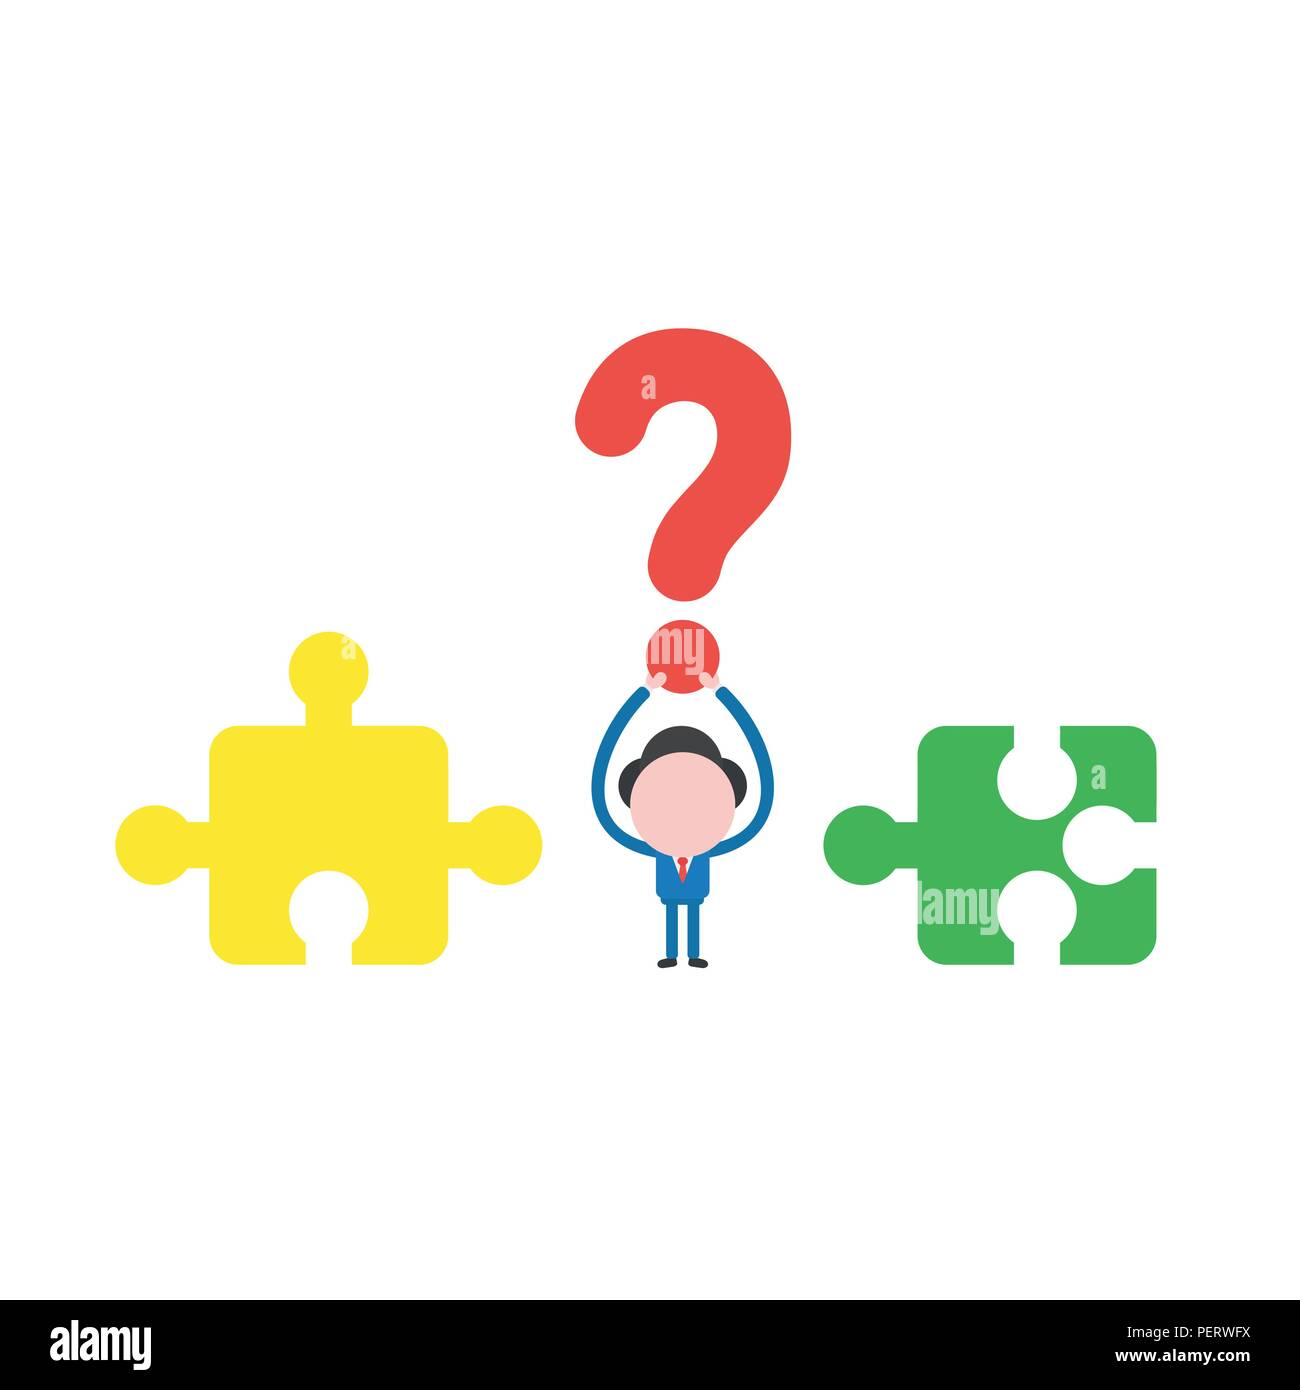 Vector illustration concept of businessman character with incompatible jigsaw puzzle pieces and holding up red question mark icon. Stock Vector